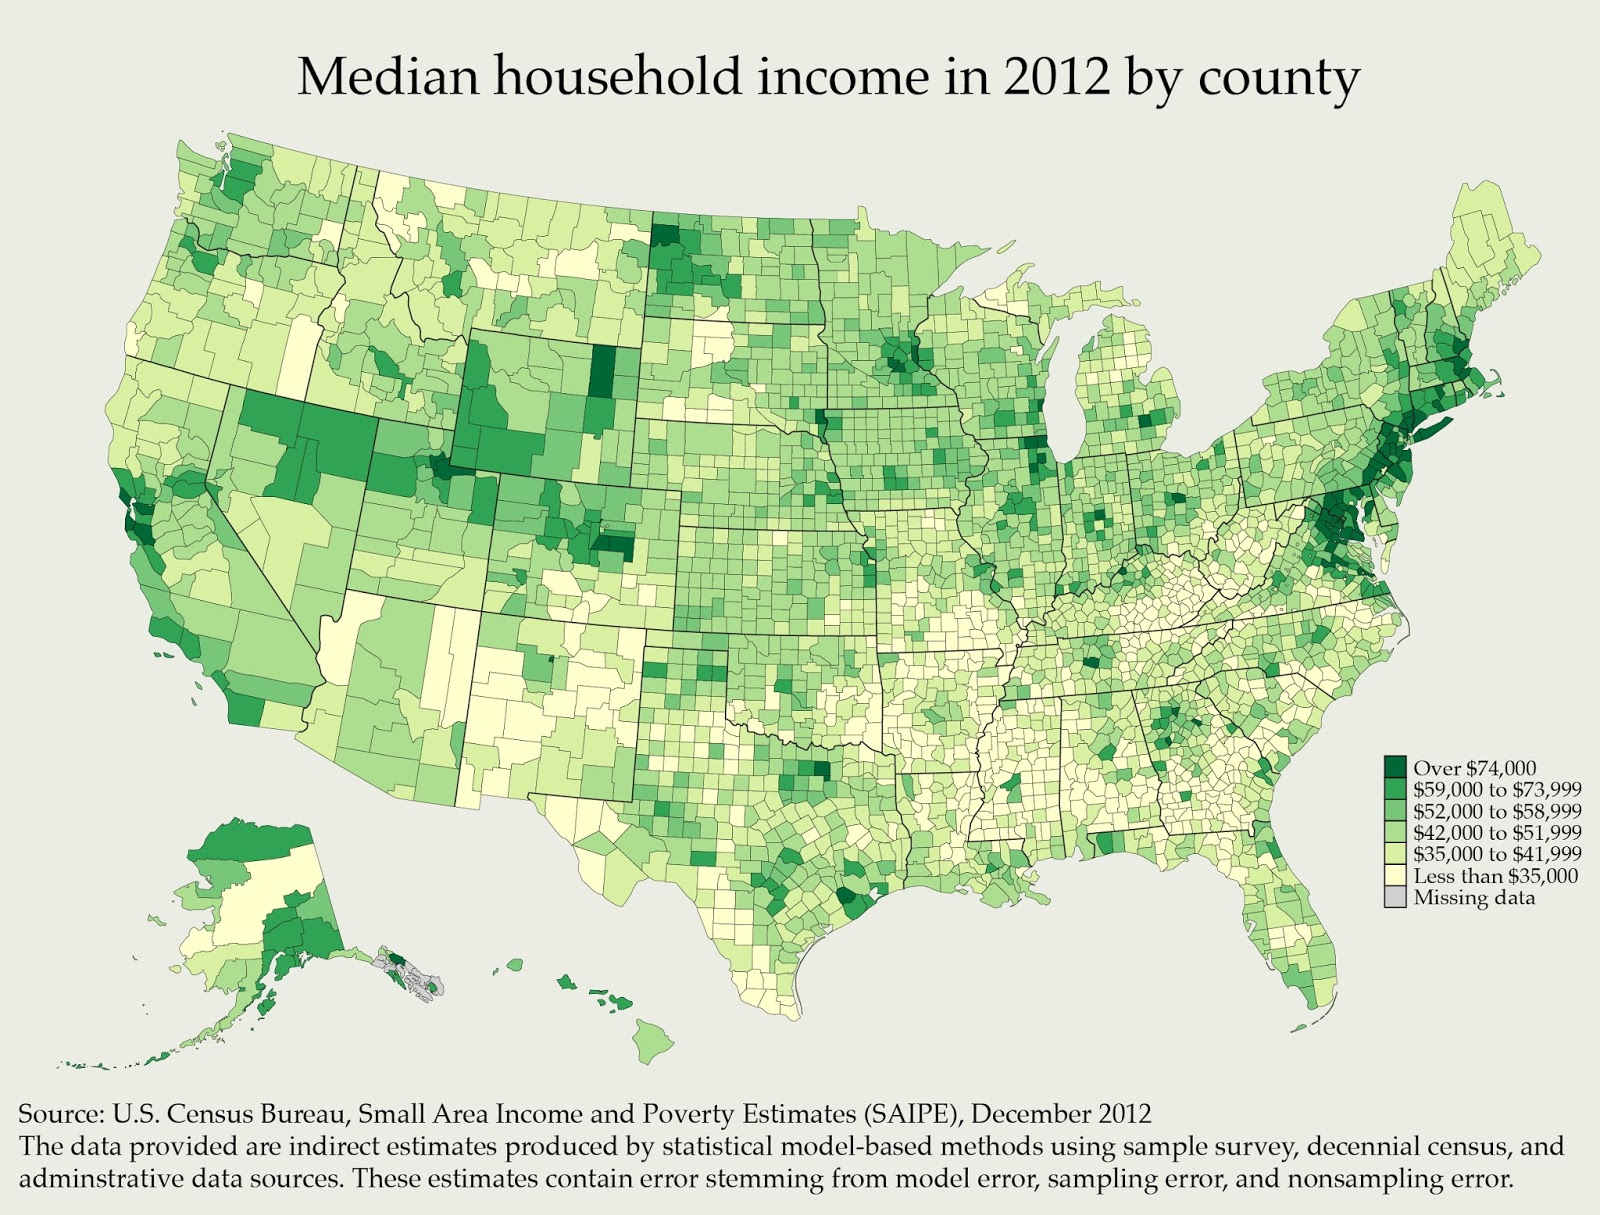 Median household income by county